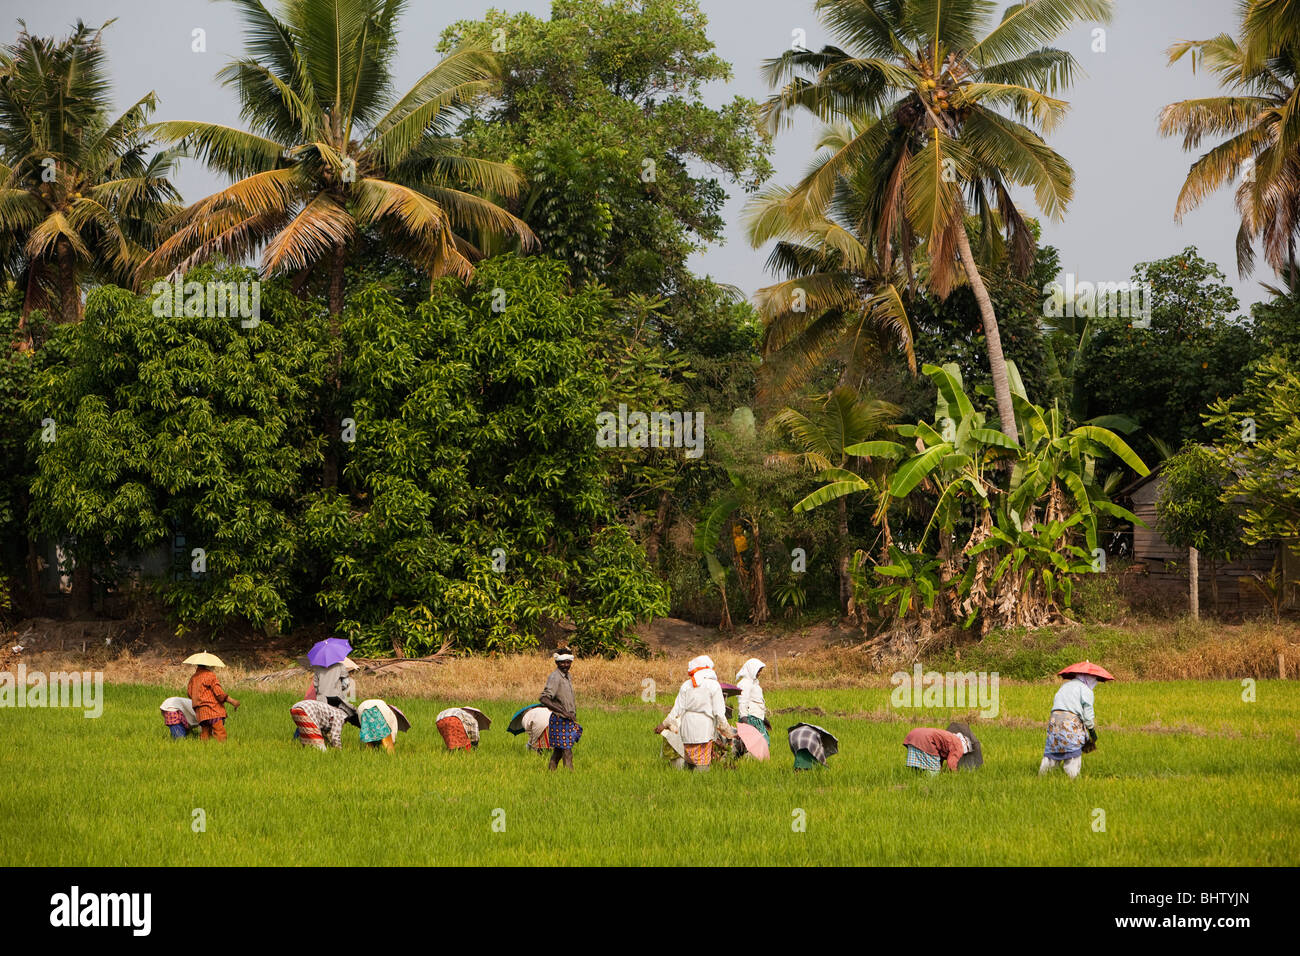 India, Kerala, Alappuzha, Chennamkary, agriculture, farm workers labouring in rice fields - Stock Image